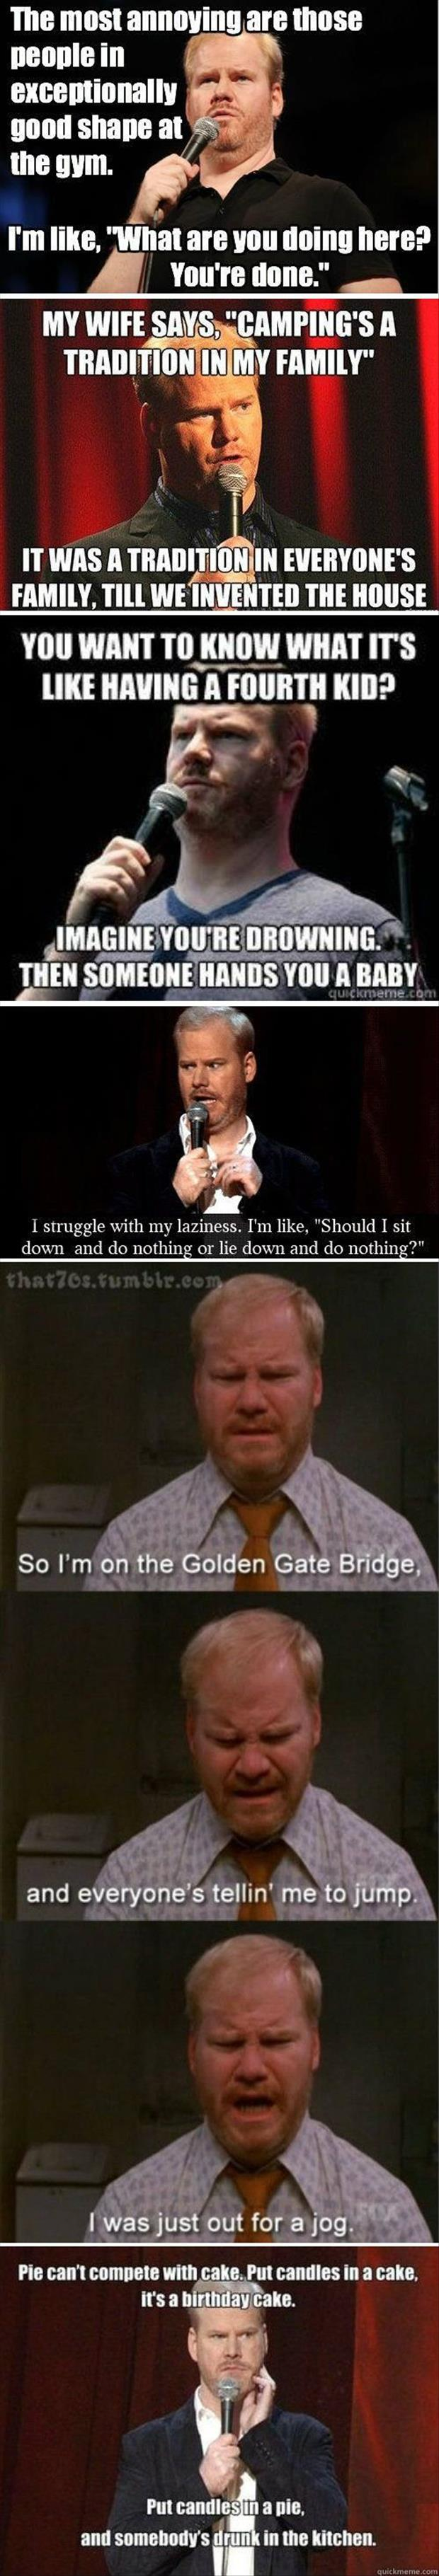 z Jim Gaffigan quotes